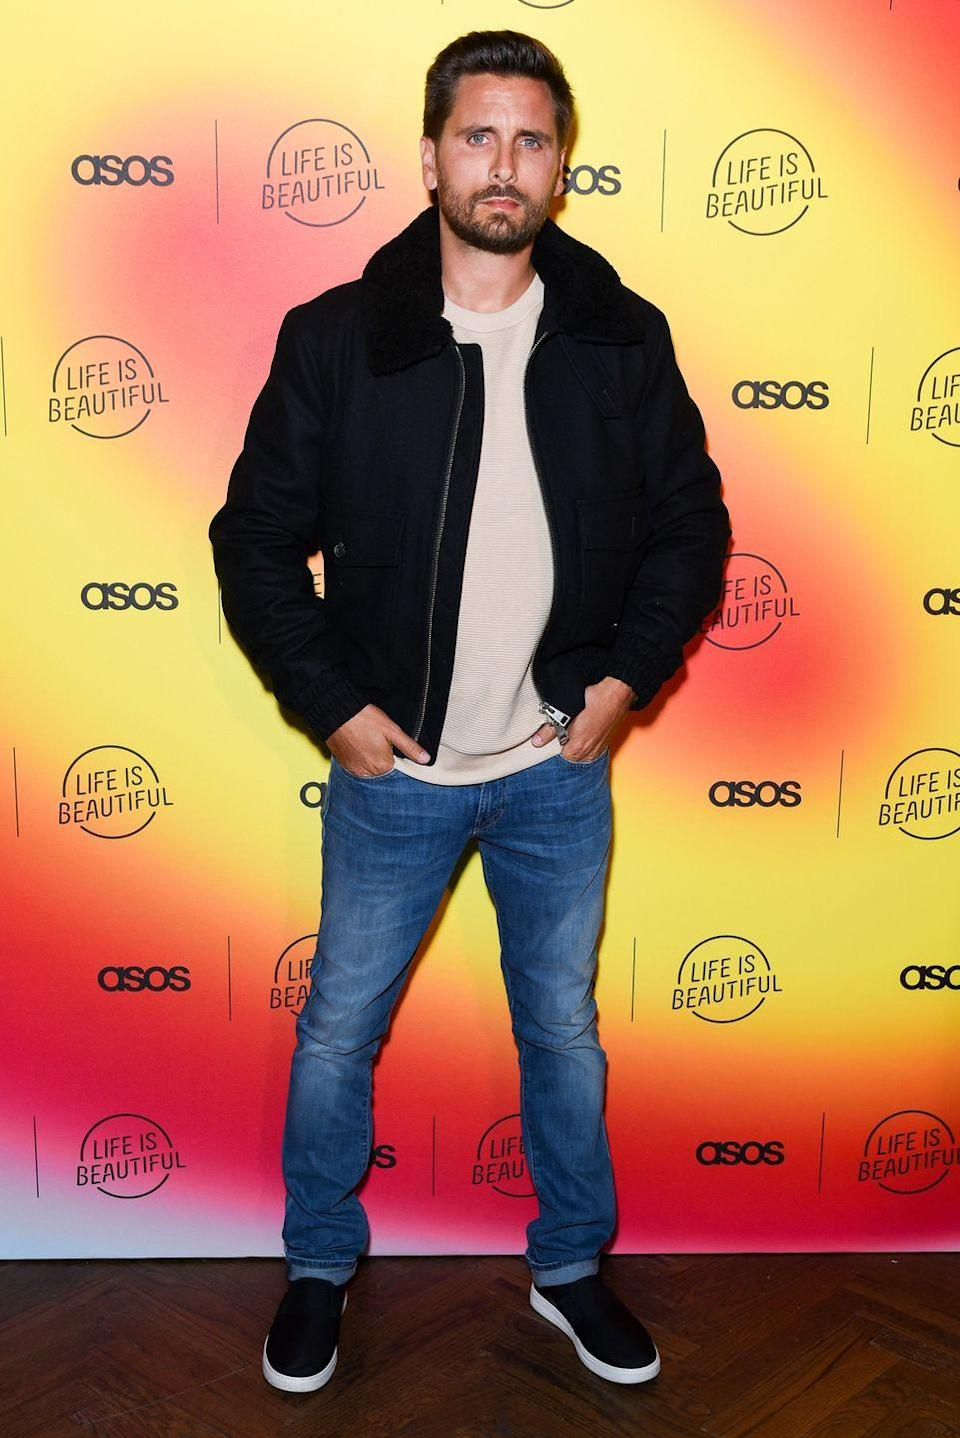 """<p>Scott may not be an official member of the Kardashian/Jenner family, but he may as well be at this point. According to <em><a href=""""https://www.celebritynetworth.com/richest-celebrities/actors/scott-disick-net-worth/"""" rel=""""nofollow noopener"""" target=""""_blank"""" data-ylk=""""slk:Celebrity Net Worth"""" class=""""link rapid-noclick-resp"""">Celebrity Net Worth</a></em>, Lord Disick is worth $40 million. While Scott makes money from his appearances on <em>KUWTK</em>, he also has his own show on E!, called <em>Flip It Like Disick, </em>not to mention other endorsement deals and business ventures. </p>"""